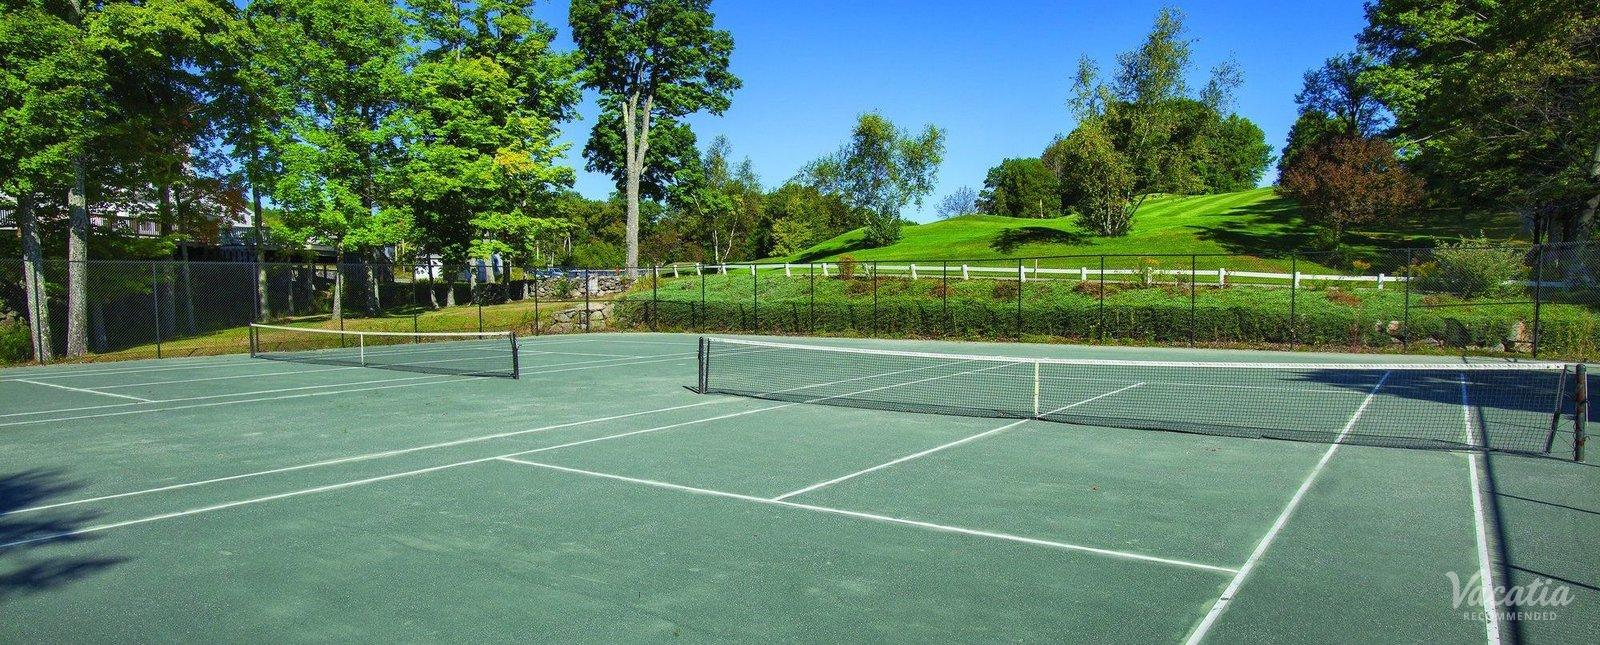 Crotched Mountain Resort Tennis Courts